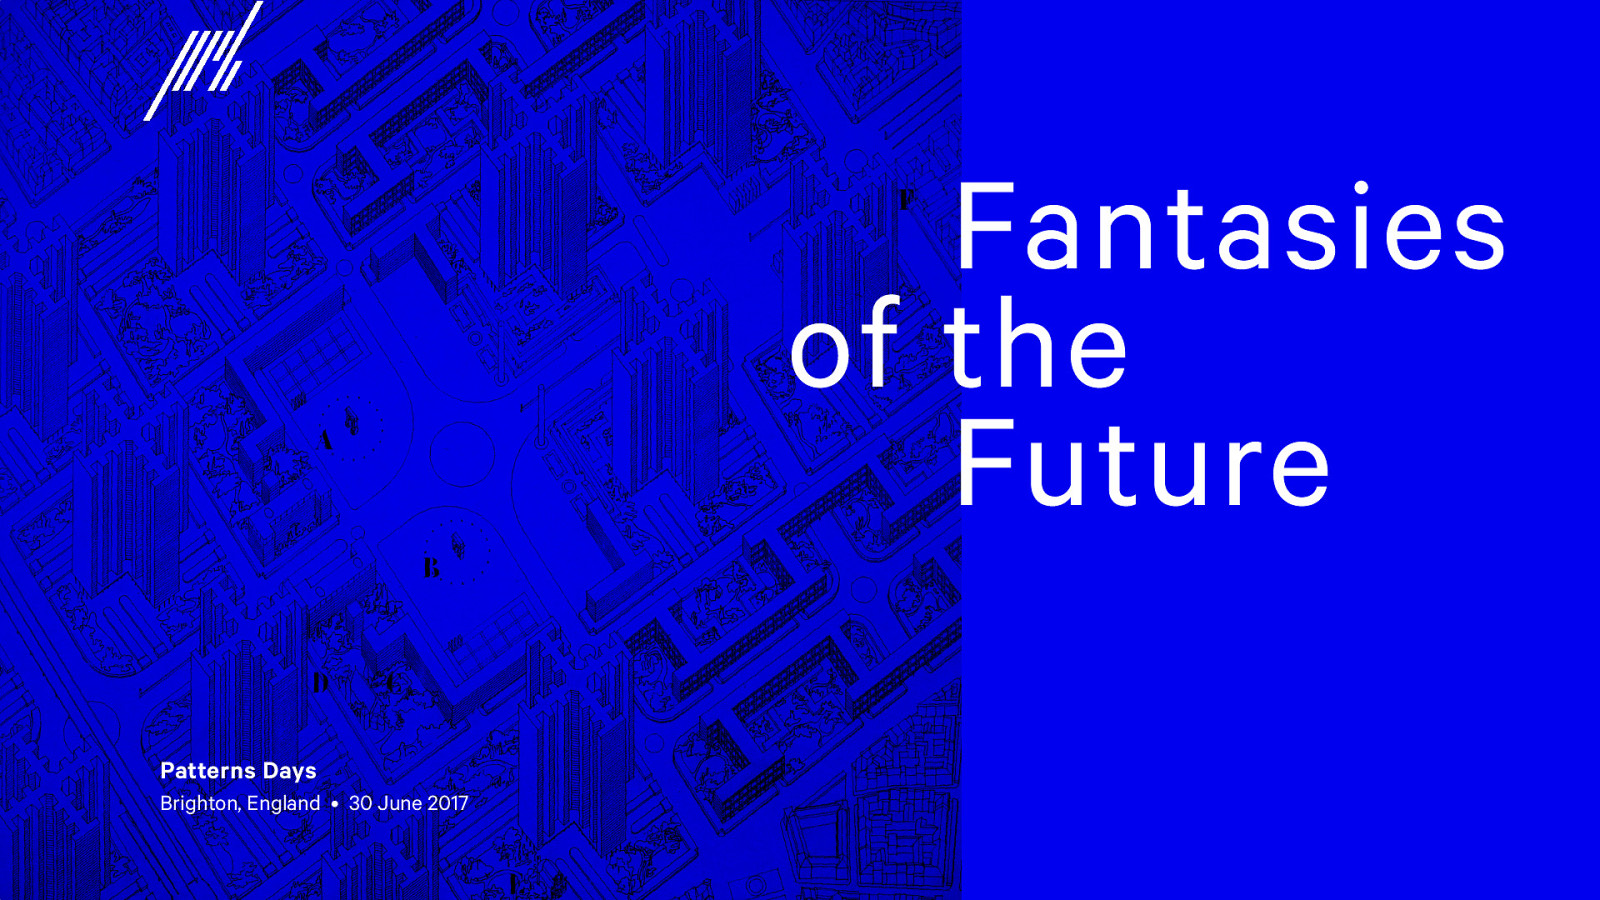 Fantasies of the Future by Paul Robert Lloyd